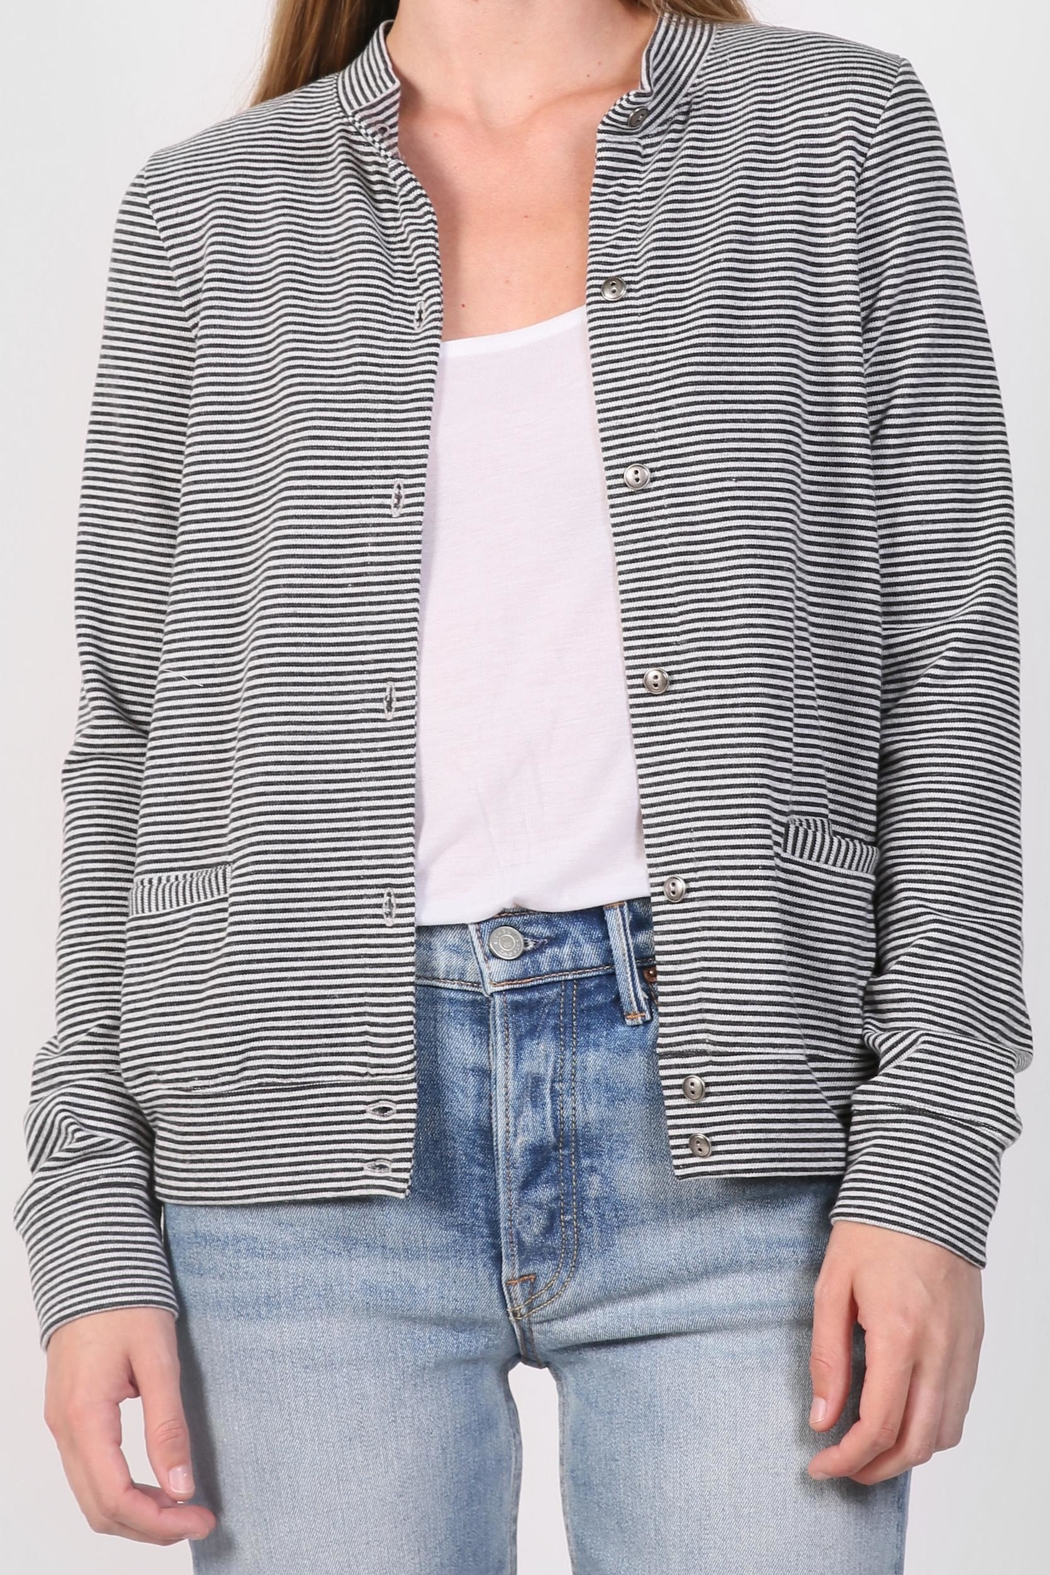 The Lady & The Sailor Striped Cardigan Sweater - Main Image